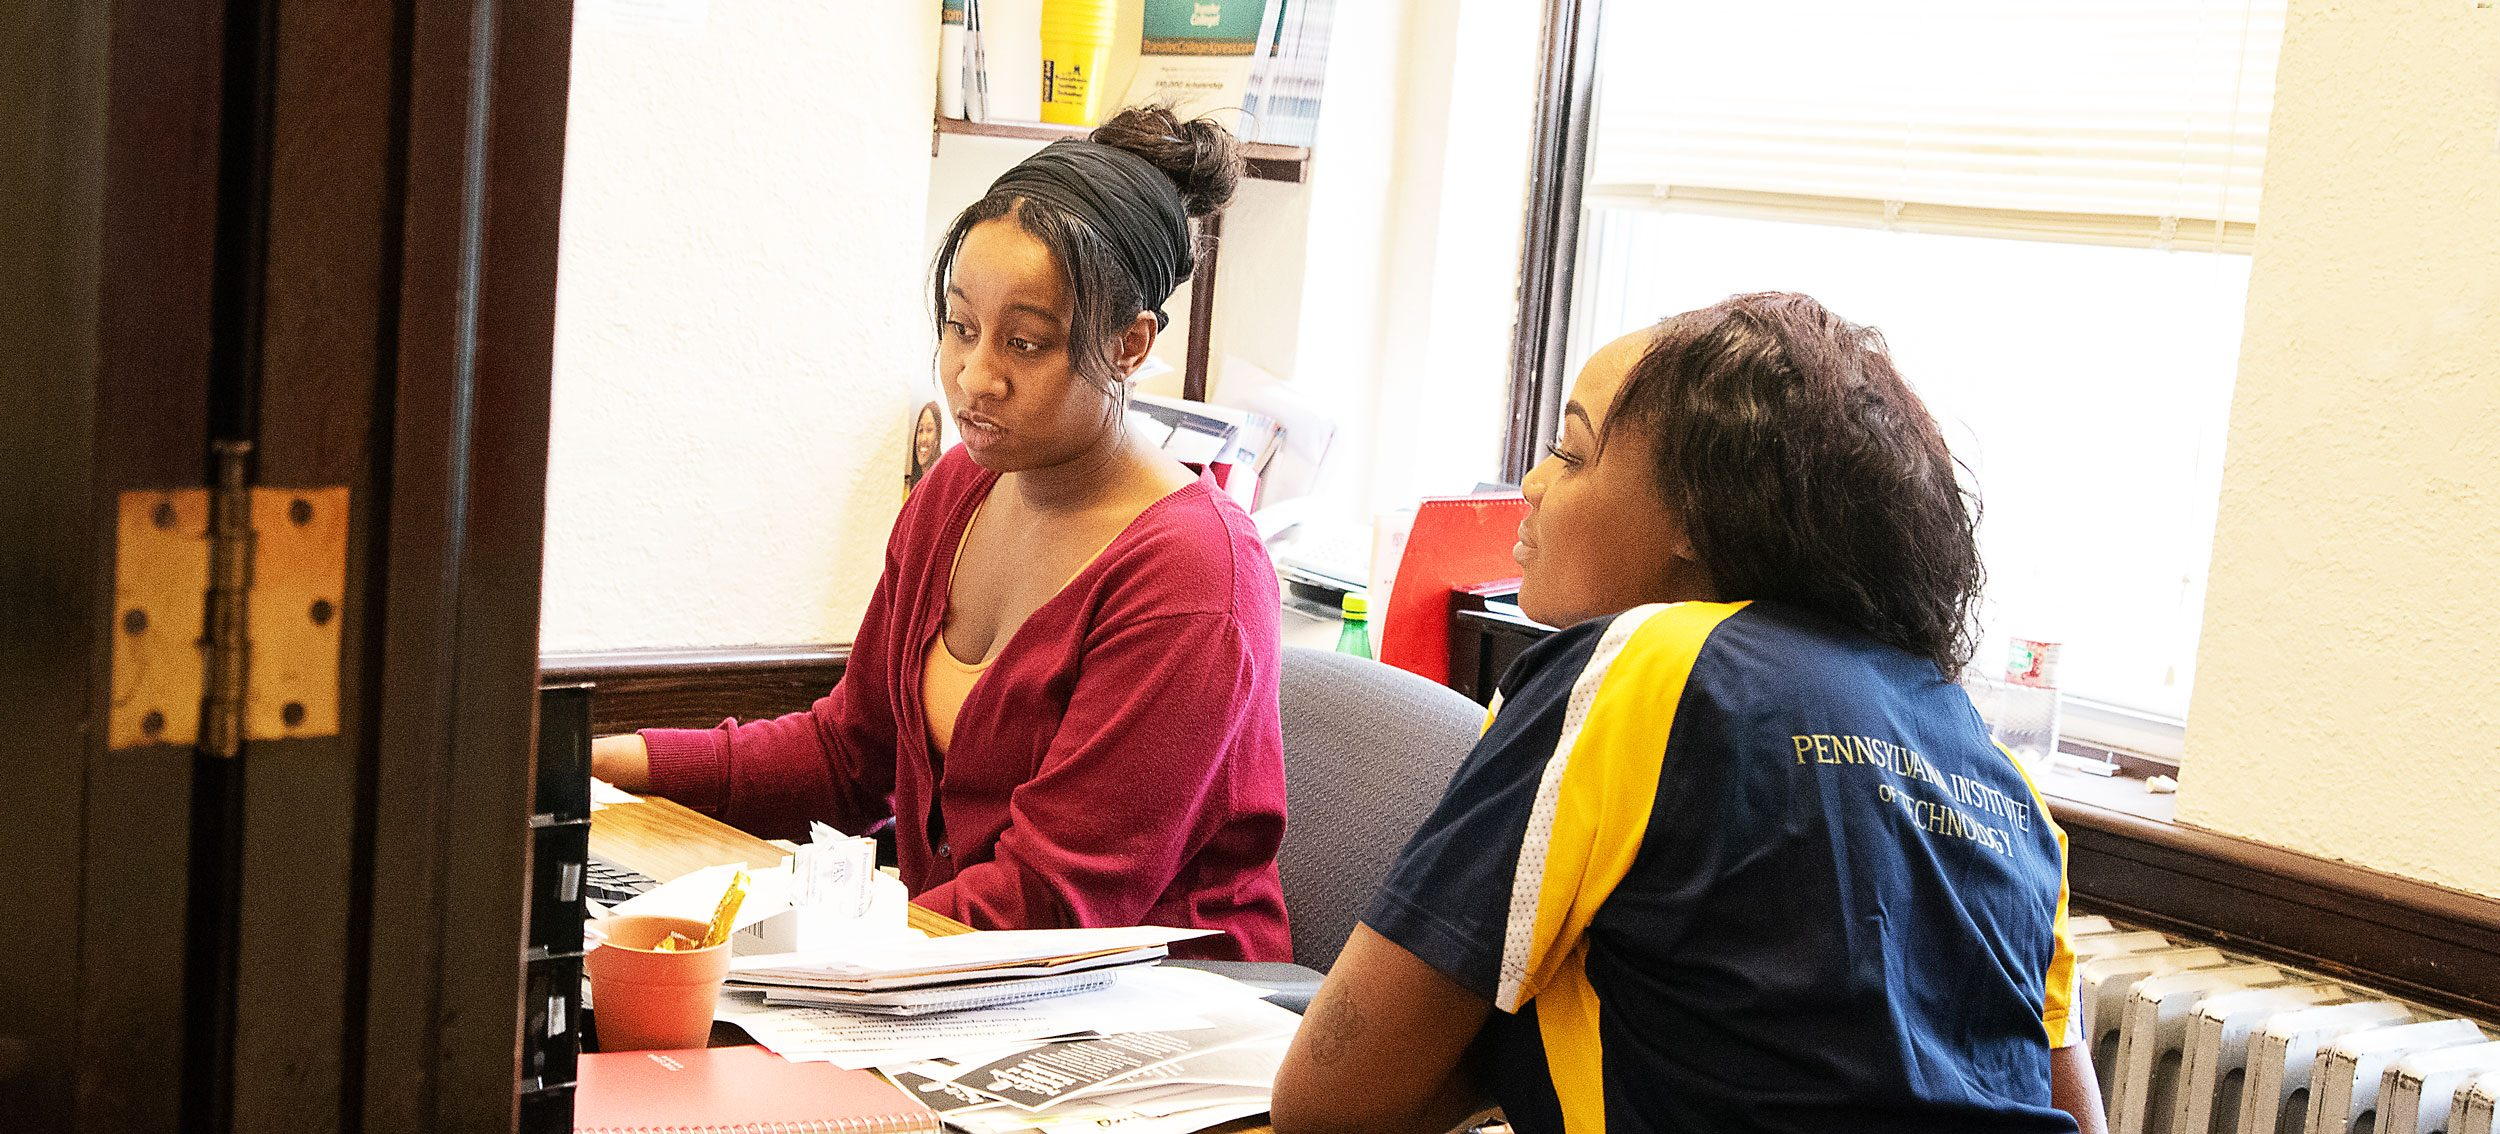 Student discussing financial aid with advisor.